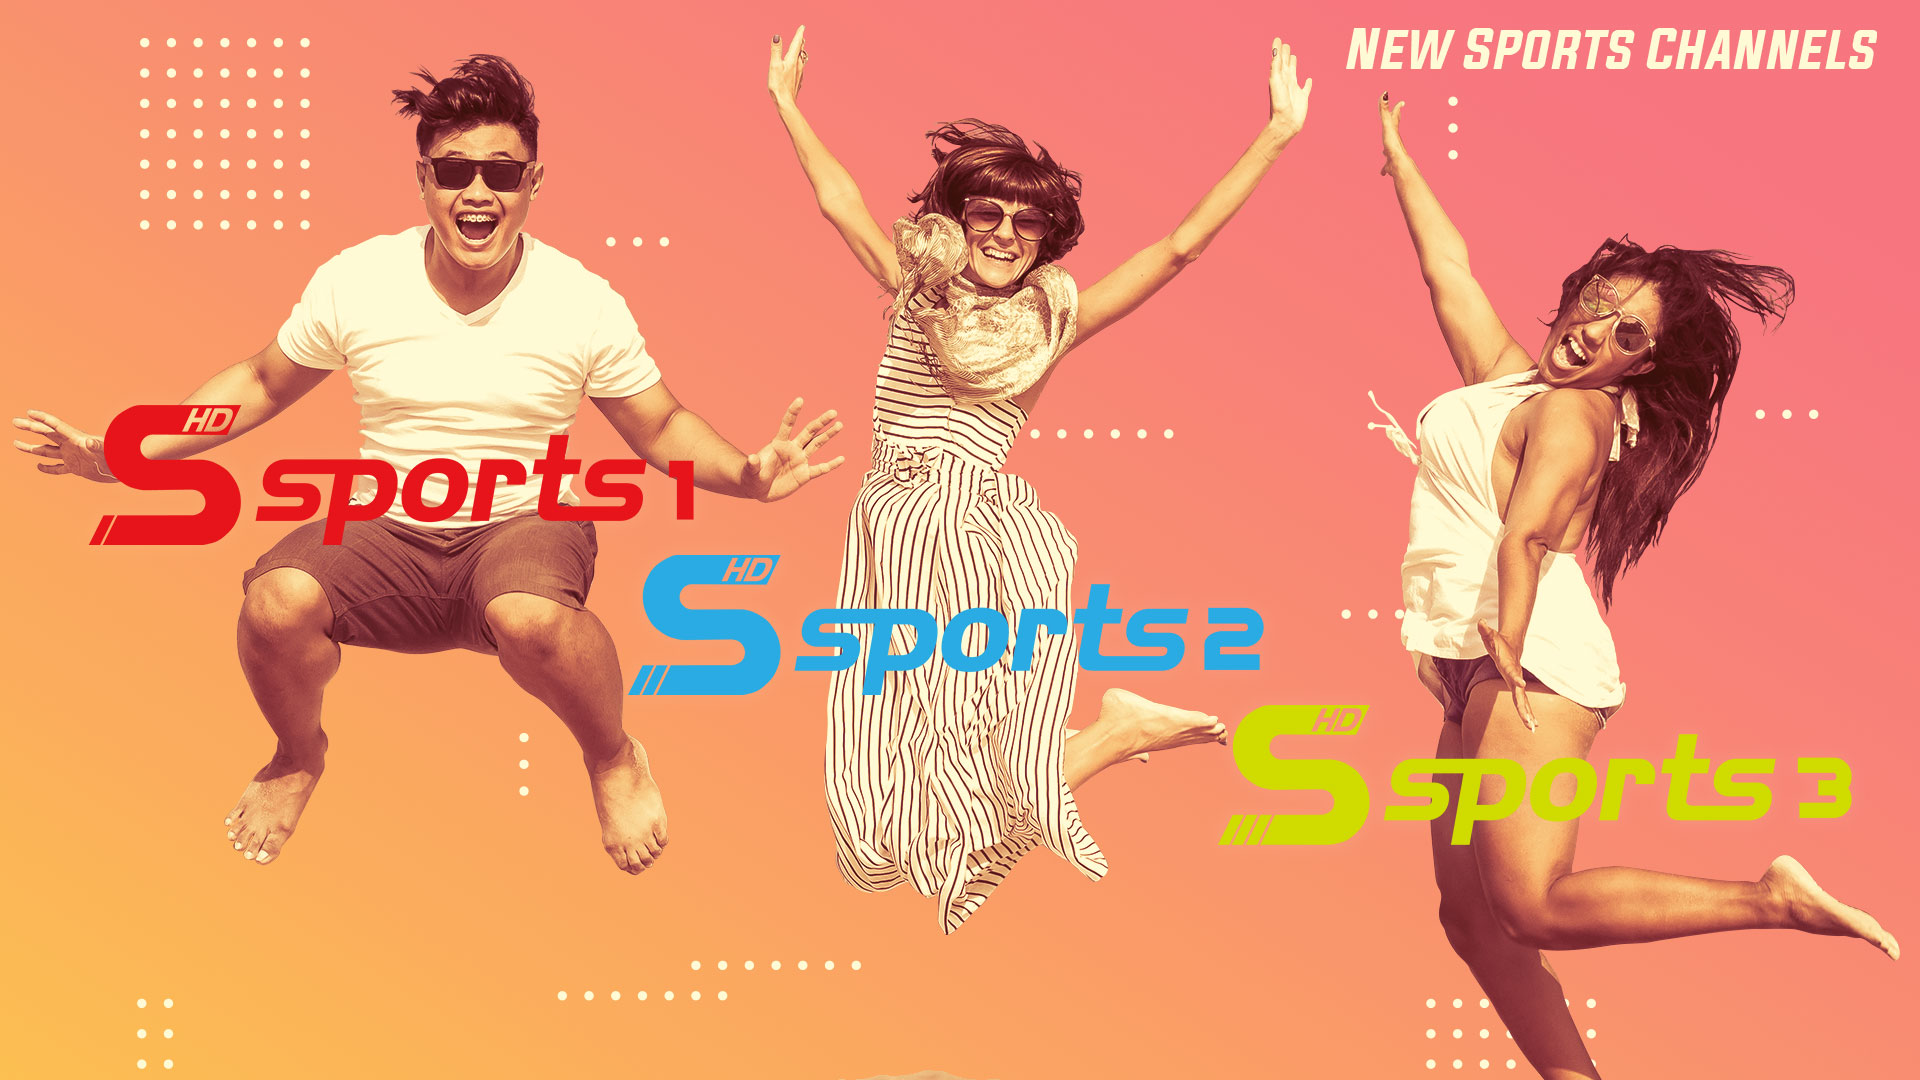 ST Sports 1 2 3 on StarSat v3